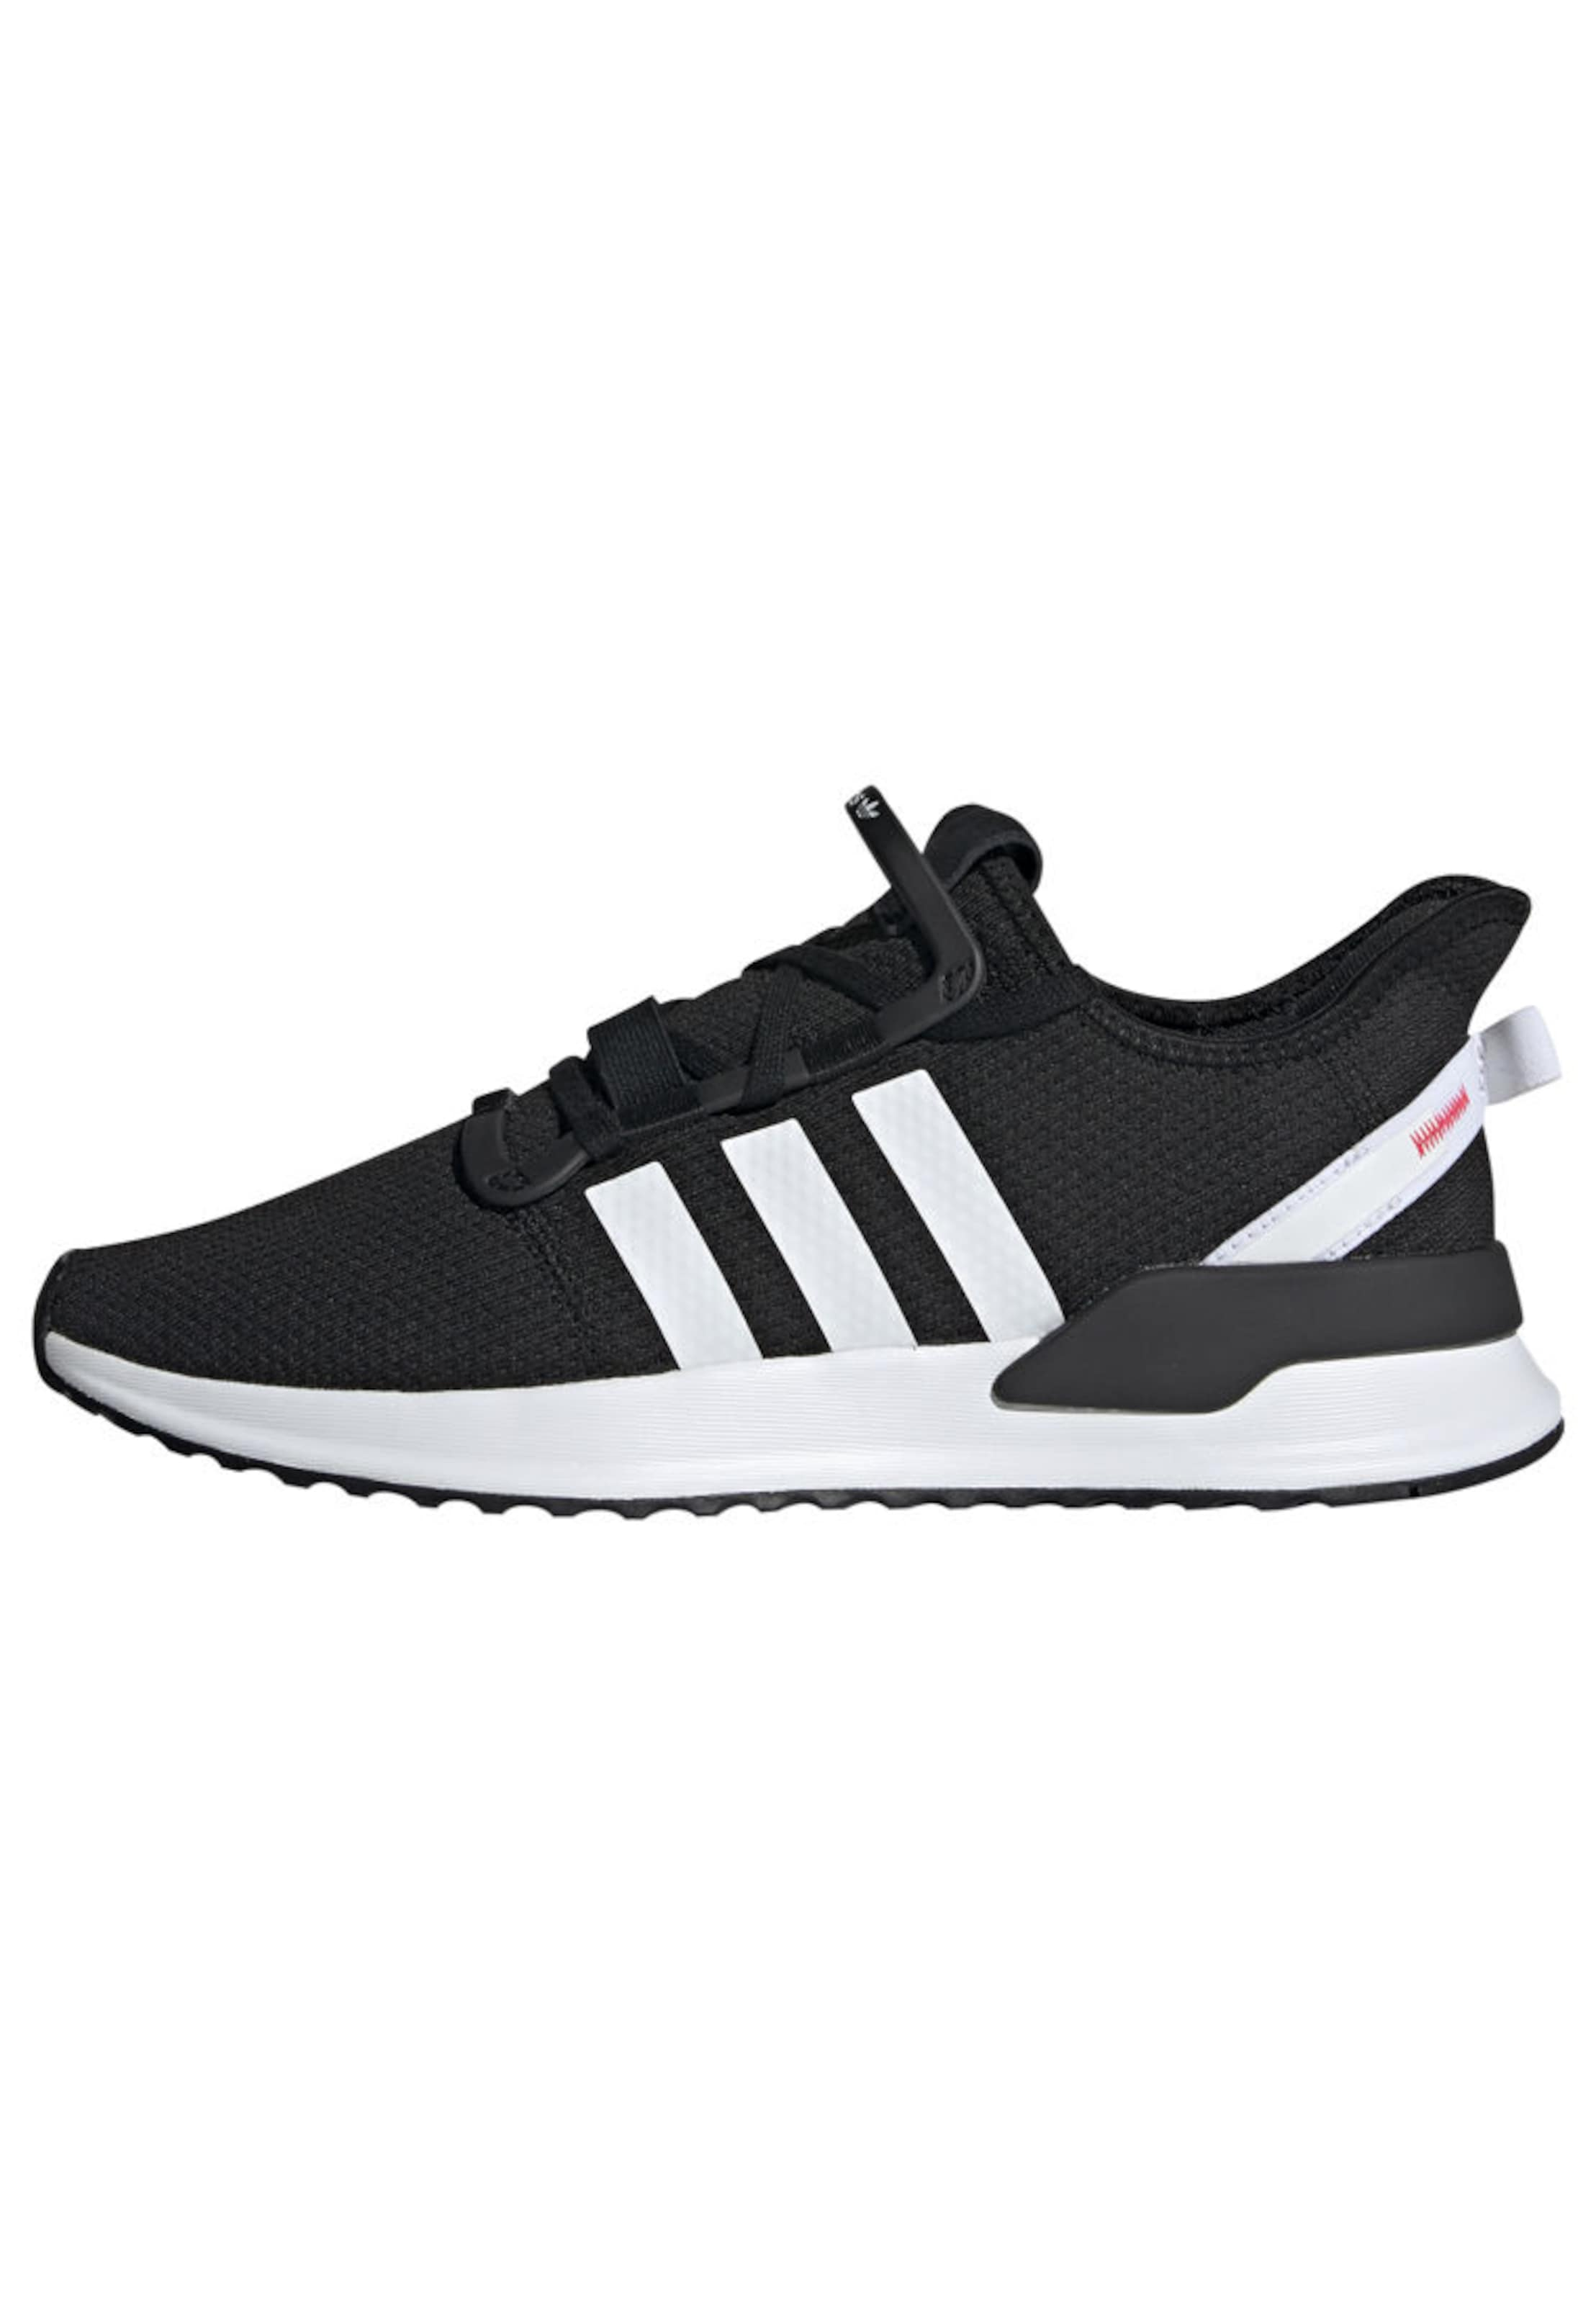 In Originals Run' Adidas Schwarz Sneaker path 'u HE9YWID2